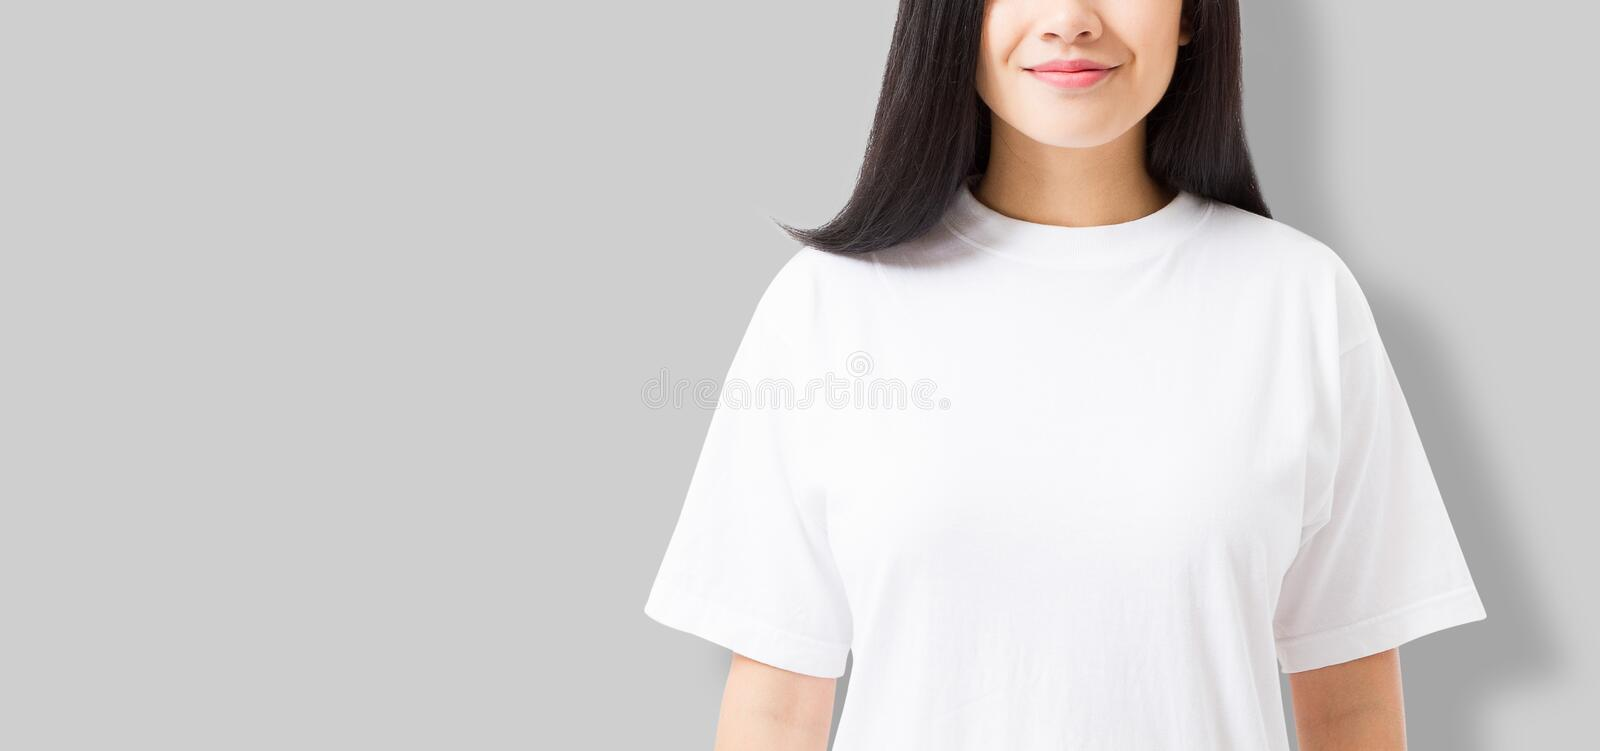 Asian girl in blank template t shirt on gray background. Young woman in tshirt copy space and mock up for advertising. stock image